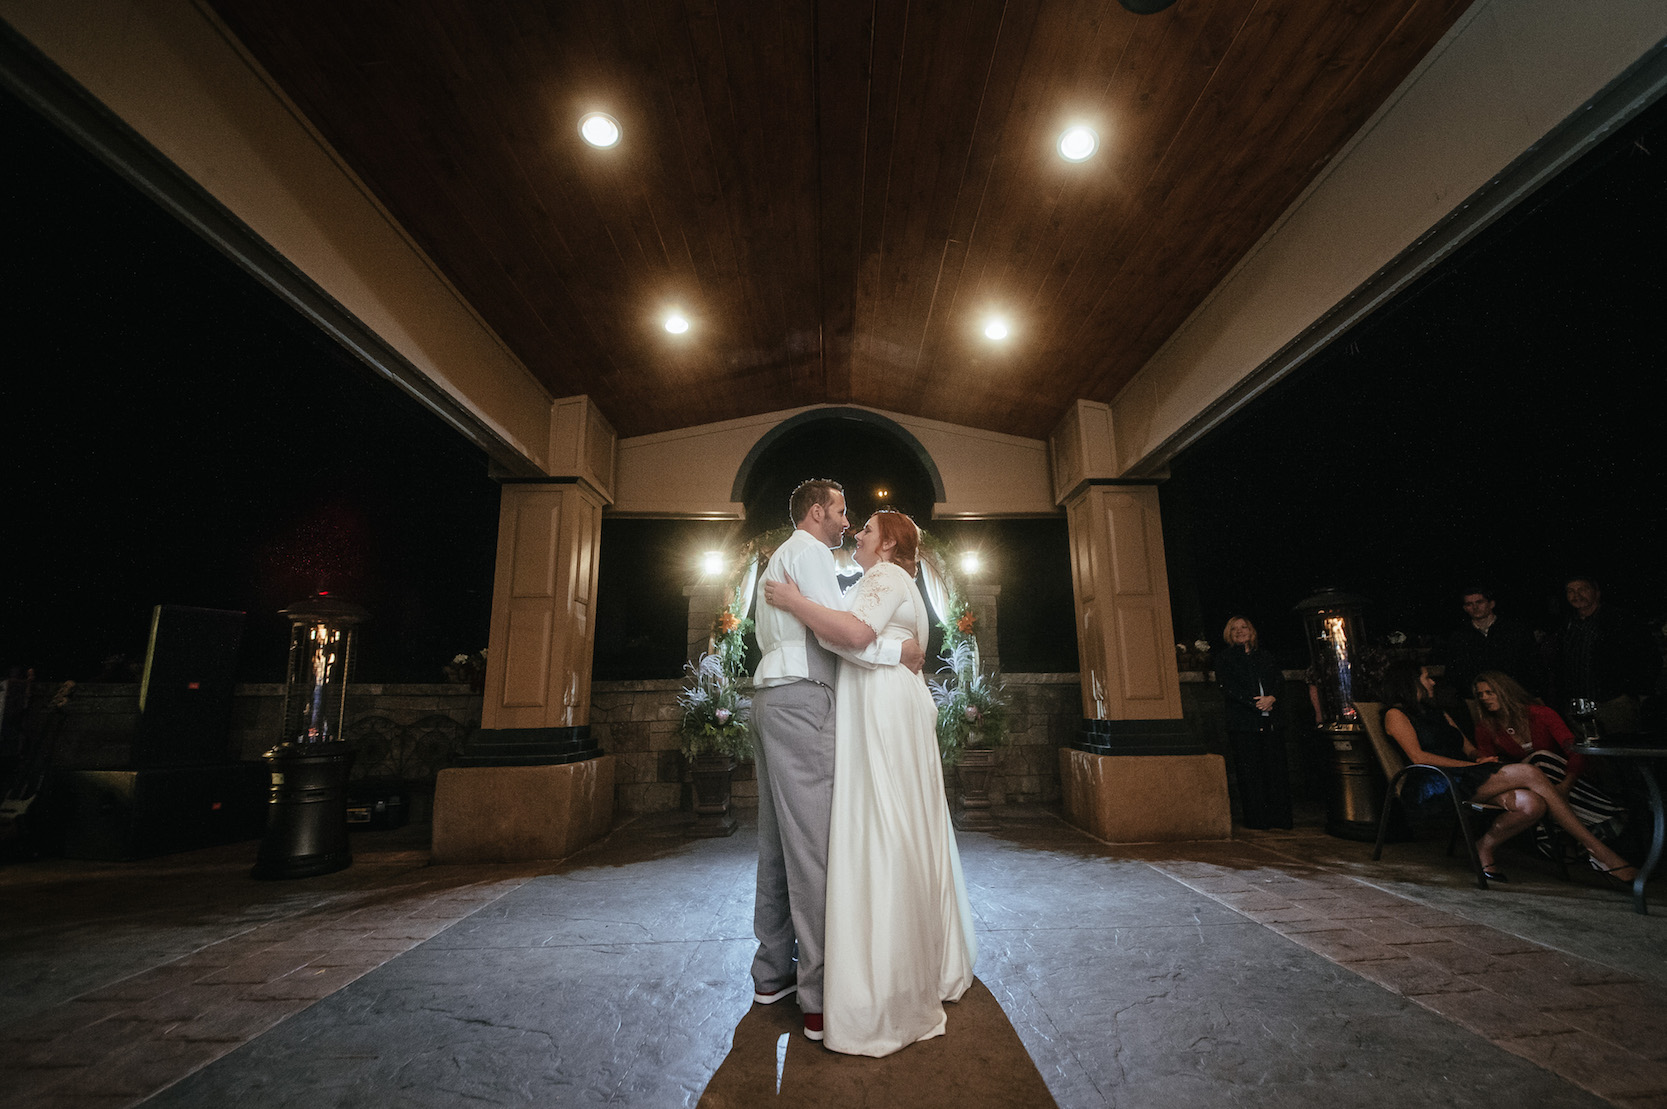 Spokane DJ. Commellini Estate Wedding DJ, Wedding Venue, Best of Spokane, Nicole & Wes